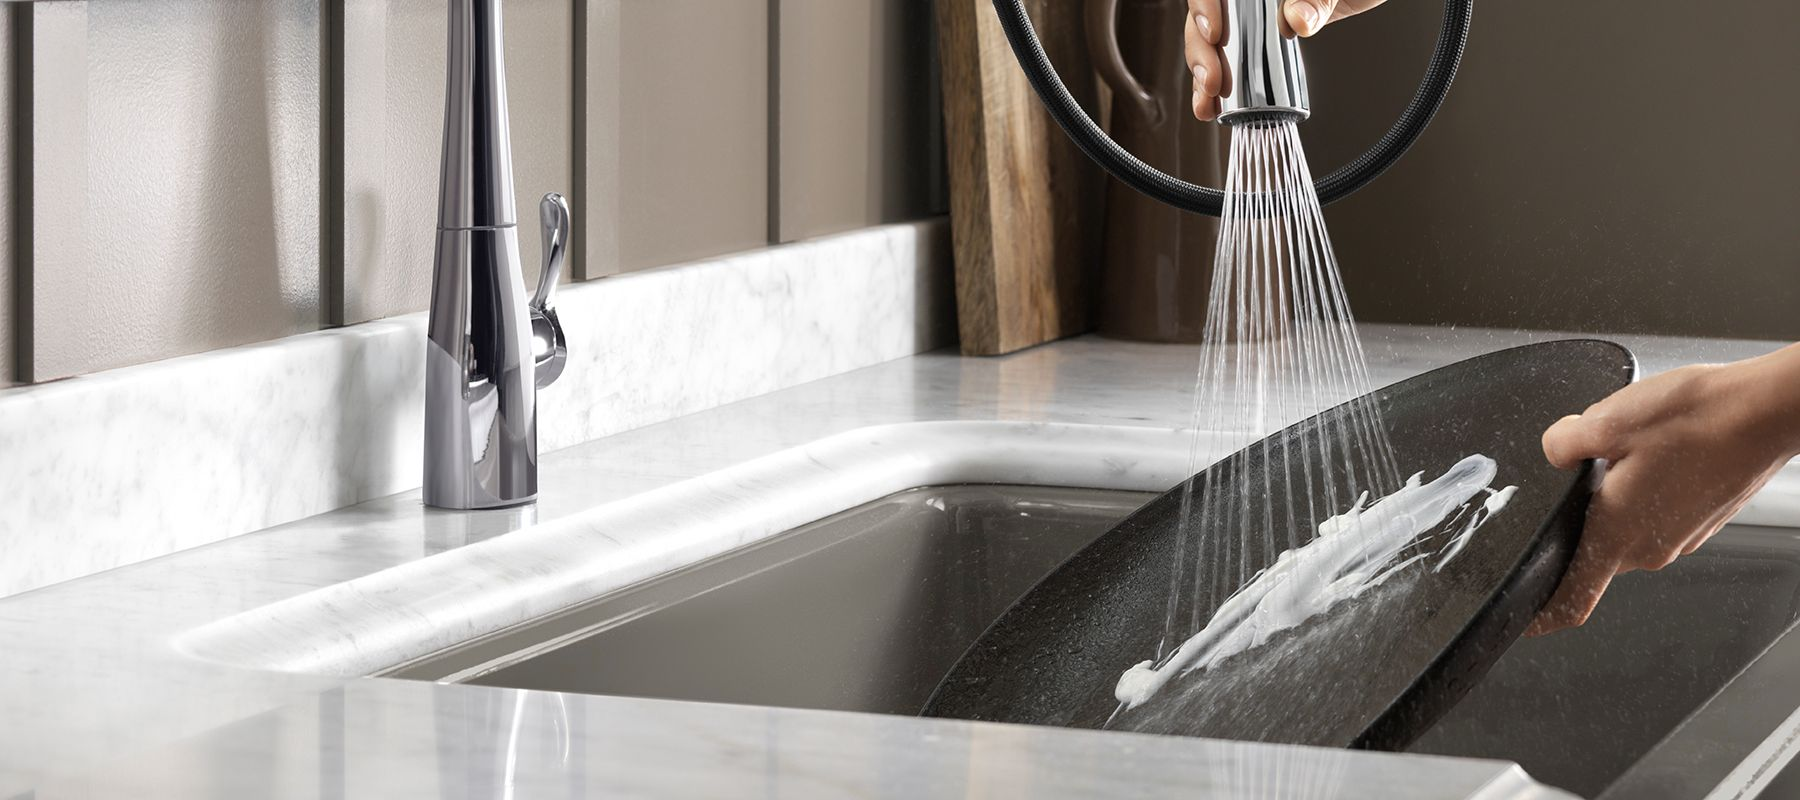 Number of Handles 1 Shop all Kitchen Faucets | Kohler.com | KOHLER